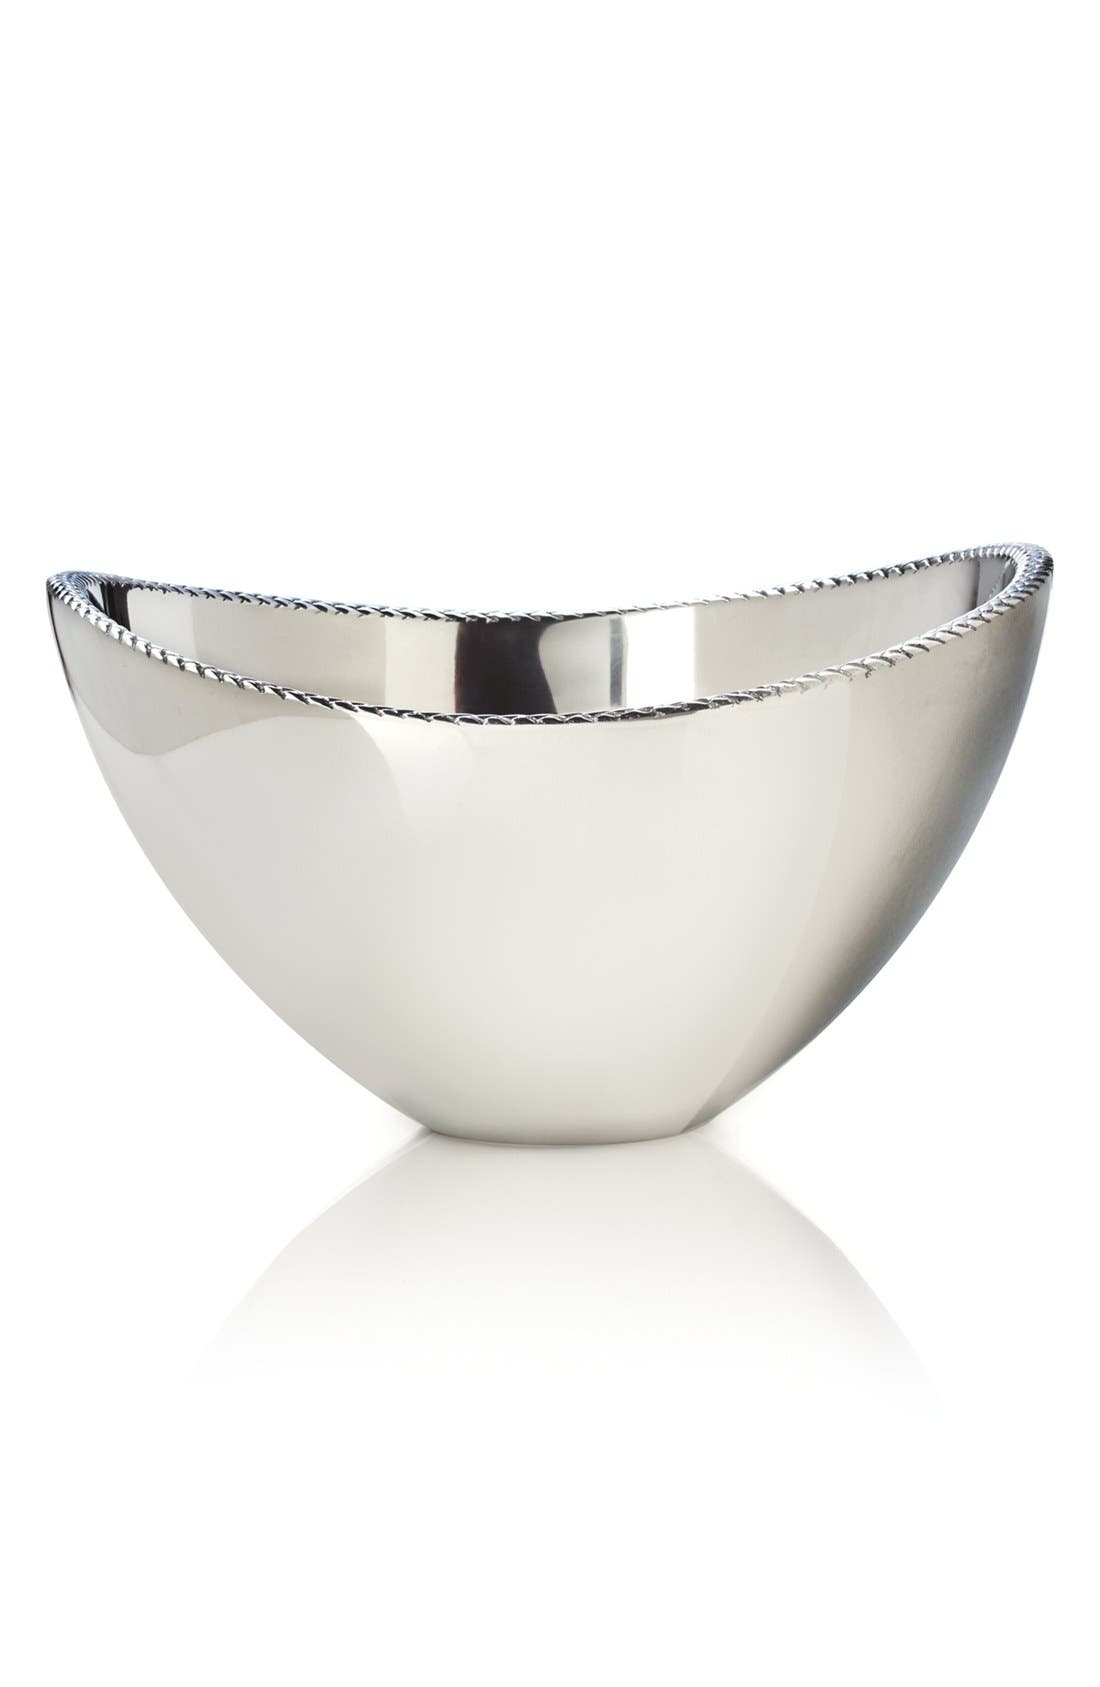 'Braid' Serving Bowl,                         Main,                         color, 040